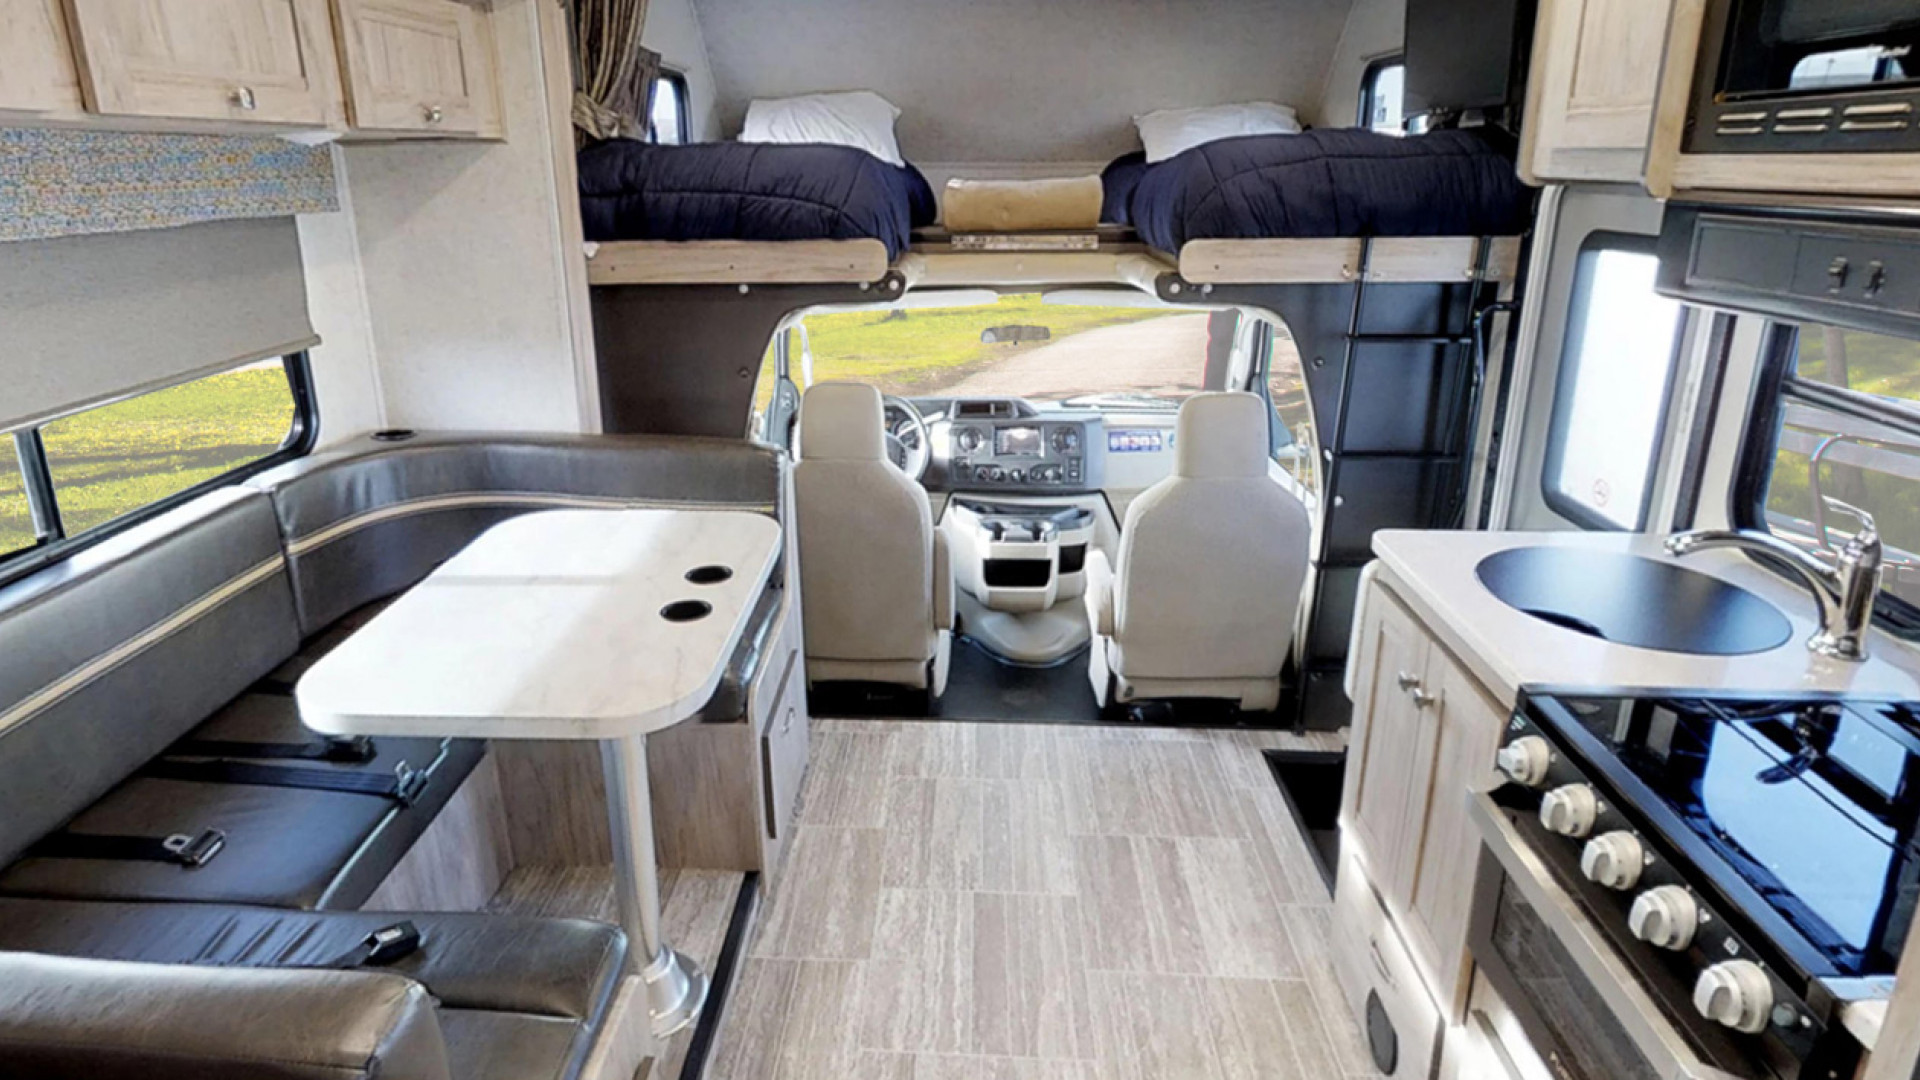 CanaDream: RV rentals in Ontario | The kitchen and sleeping bunks inside one of CanaDream's vehicles